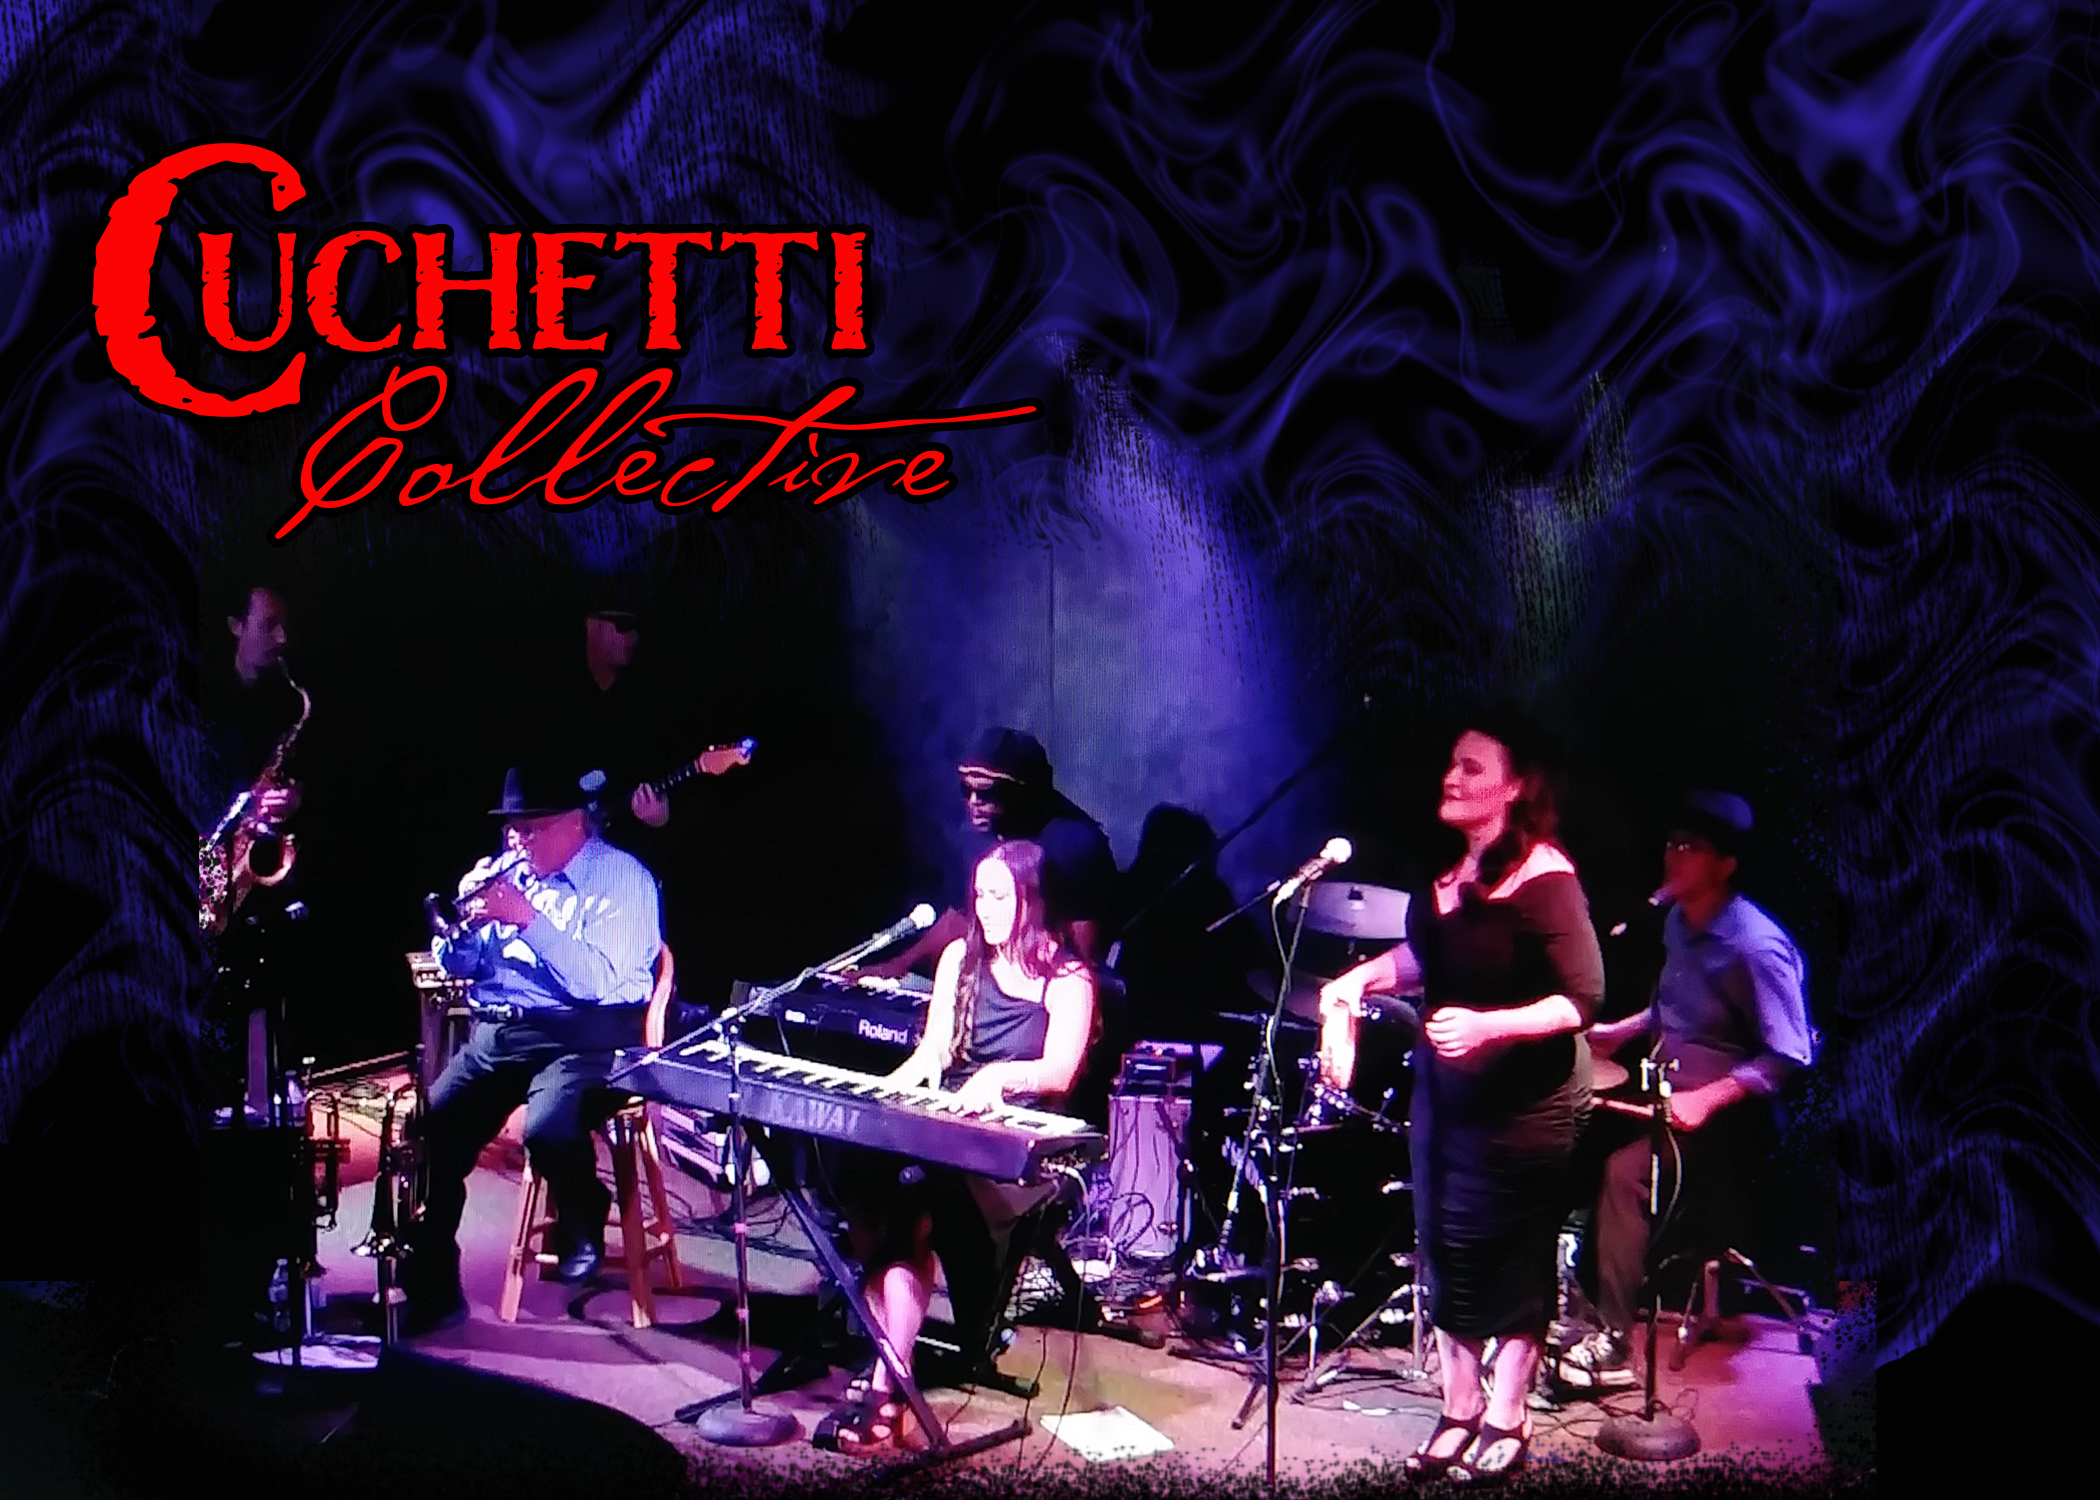 The Cuchetti Collective